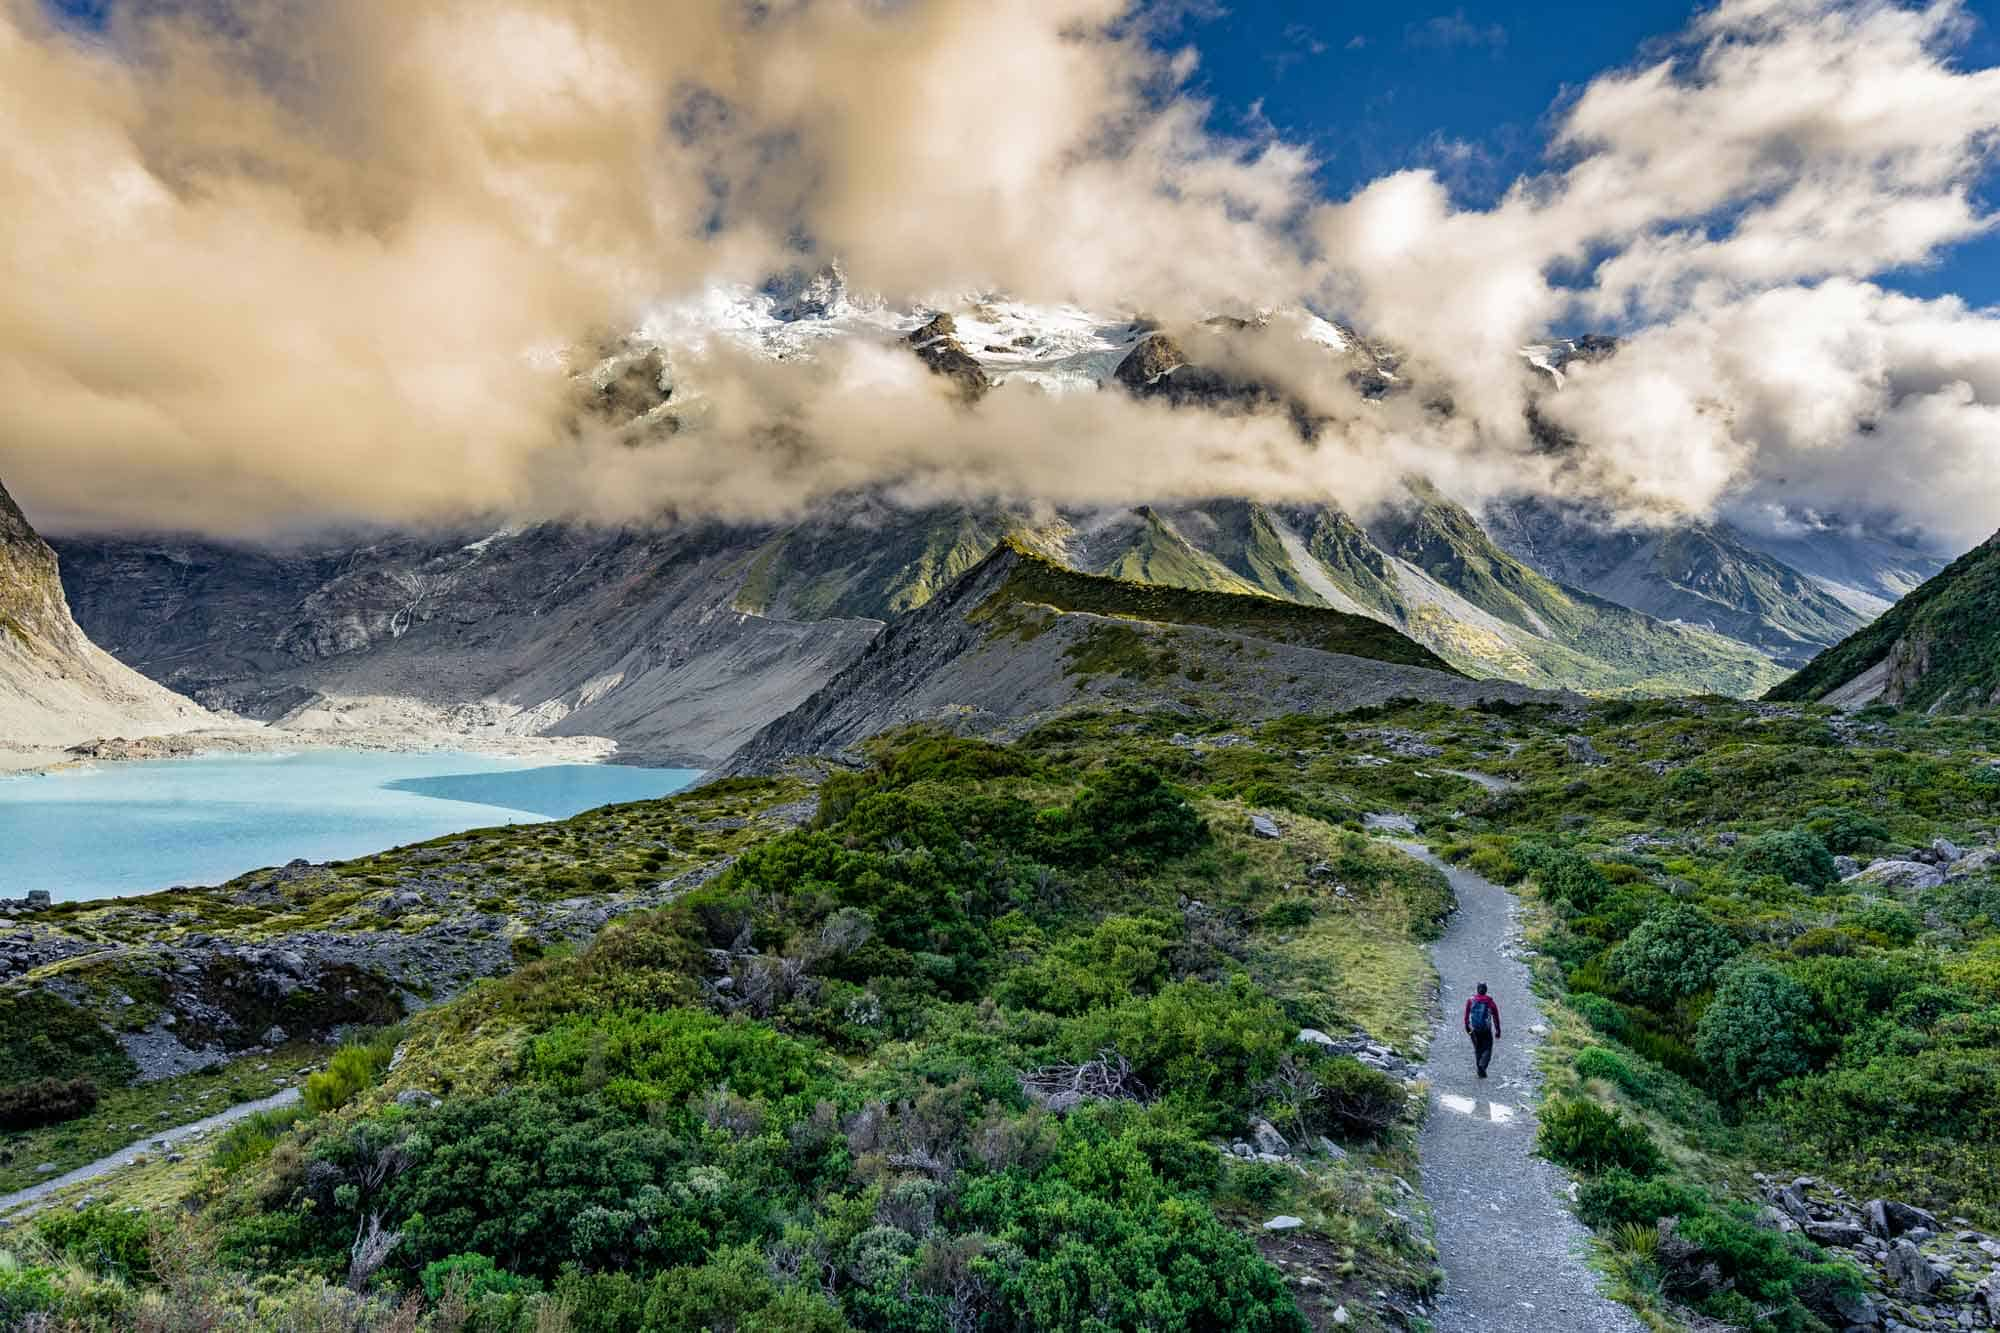 The Ultimate Guide to HIKING in New Zealand (2021 Guide)